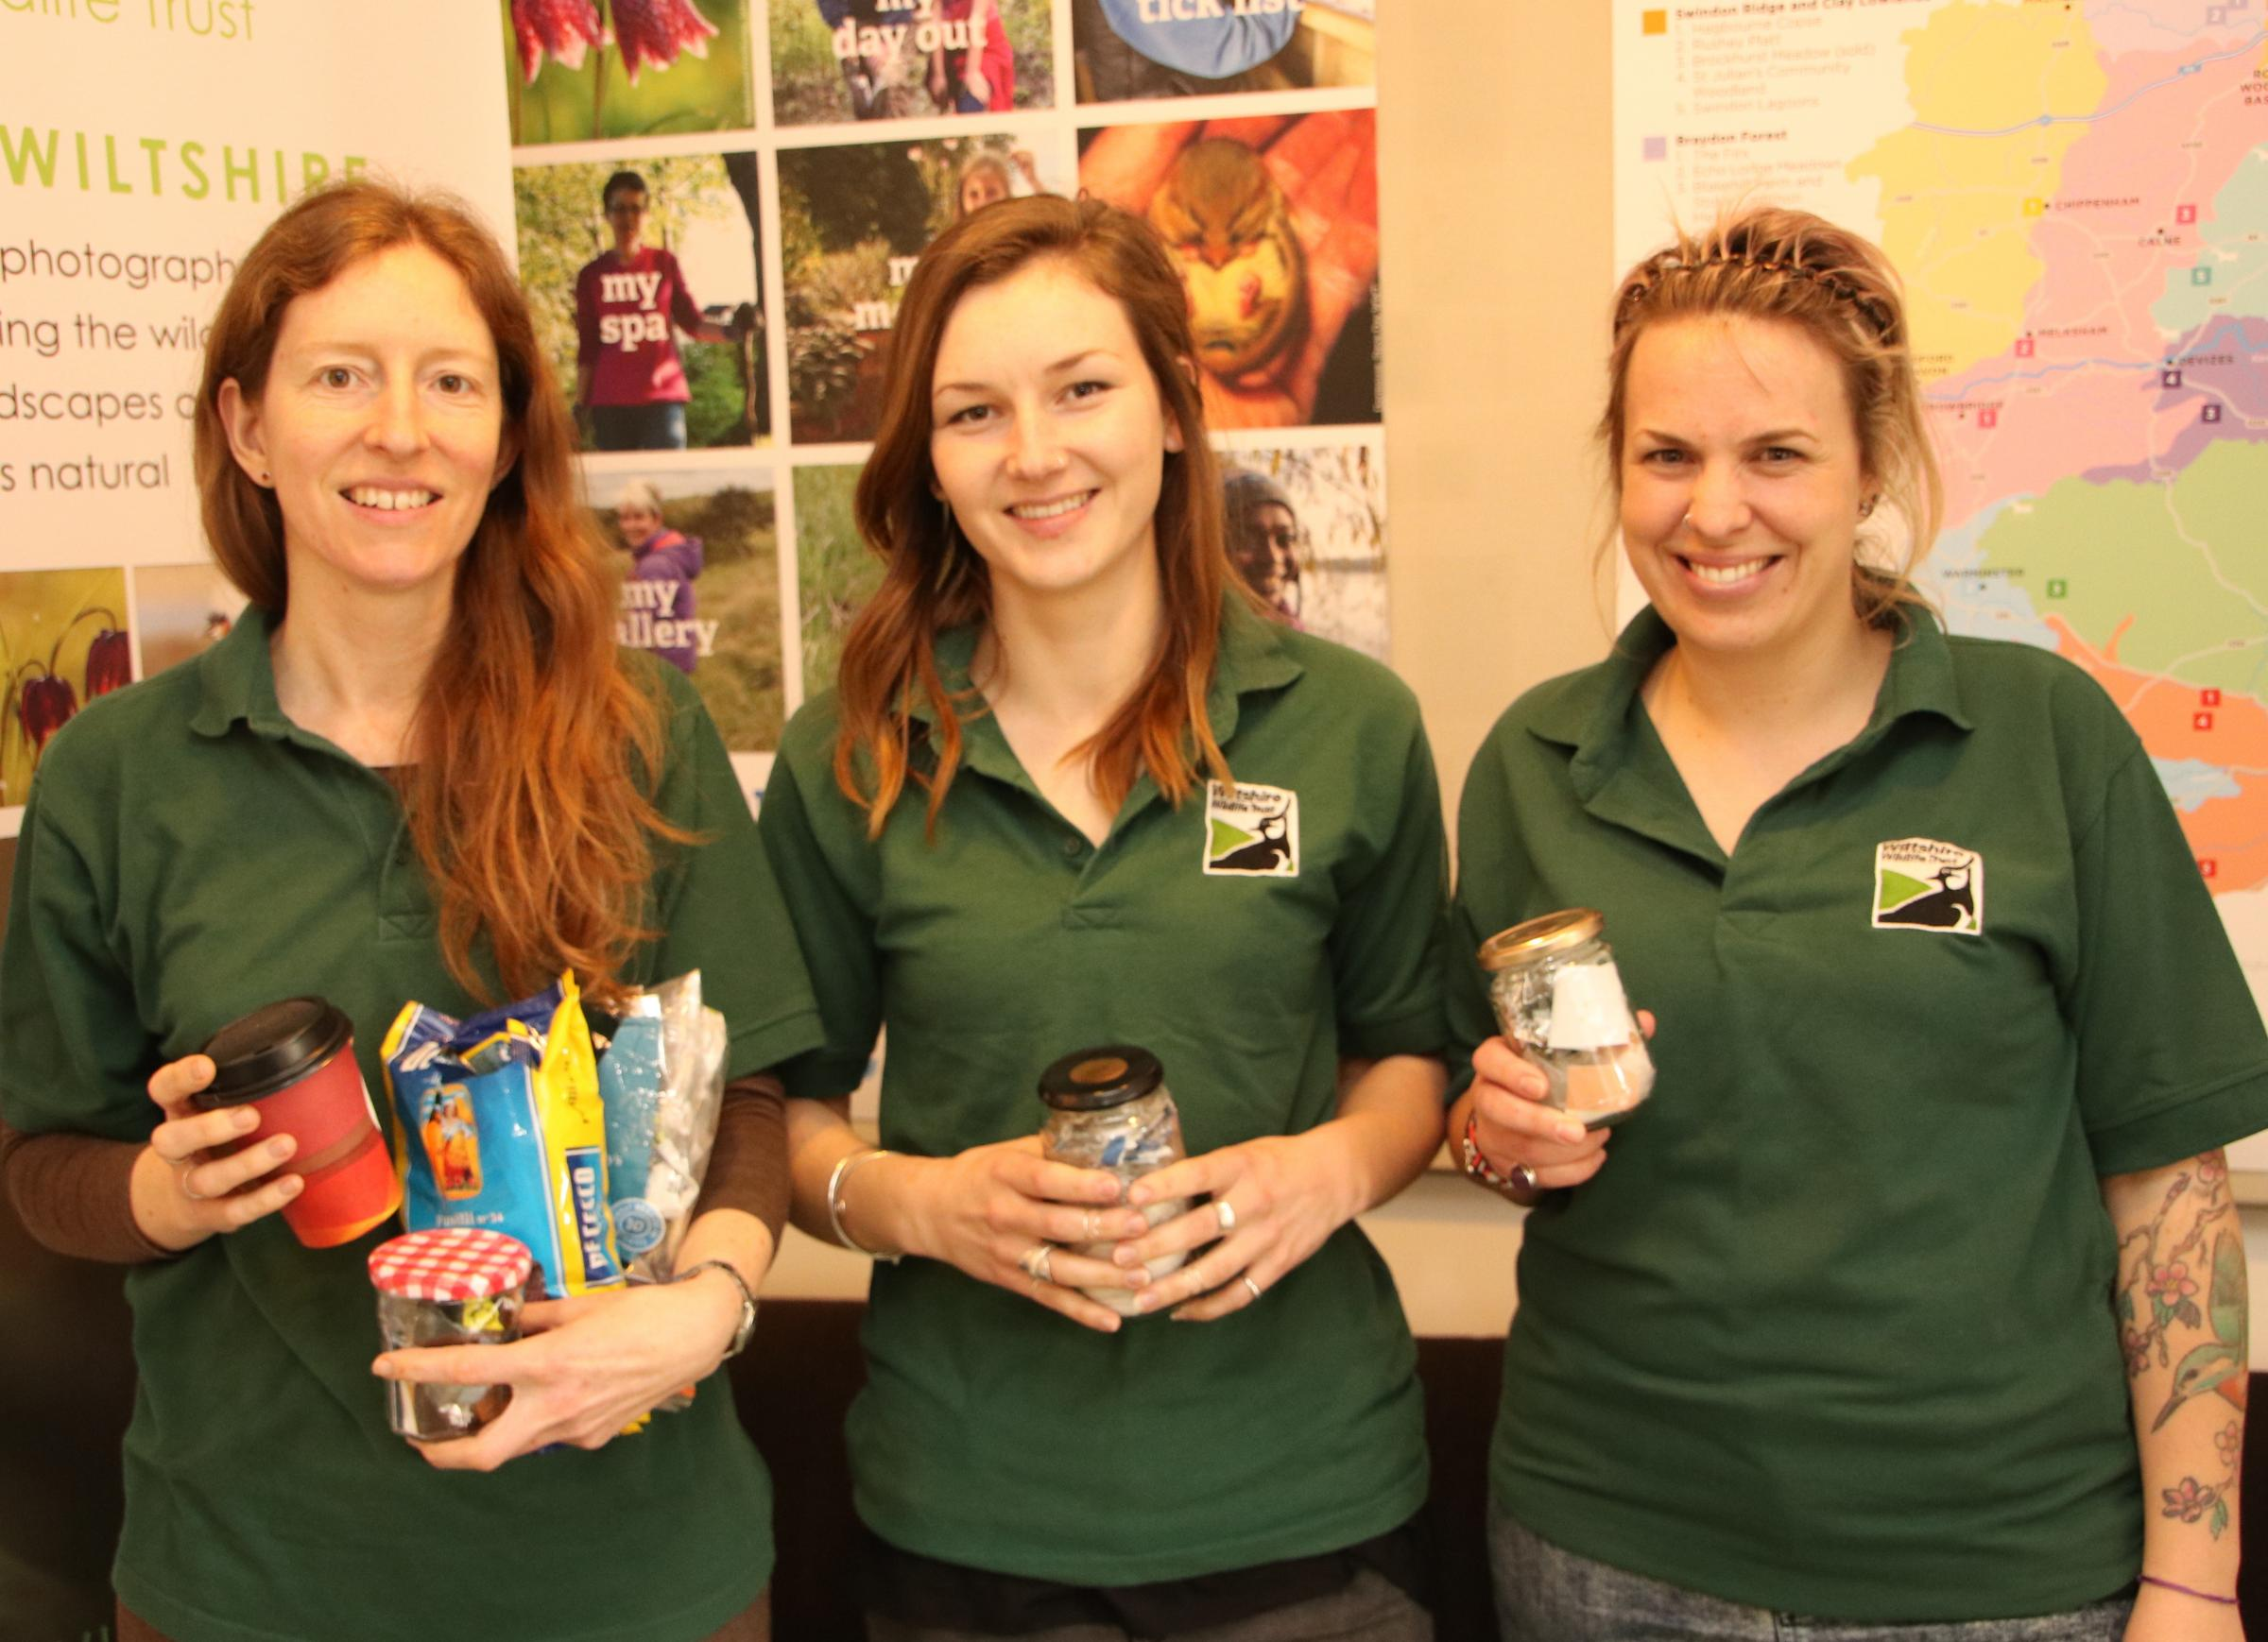 The Waste Education Team: Jessica Thimbleby, Chelsie Phillips and Gemma Annan – credit Ralph Harvey, Wiltshire Wildlife Trust.